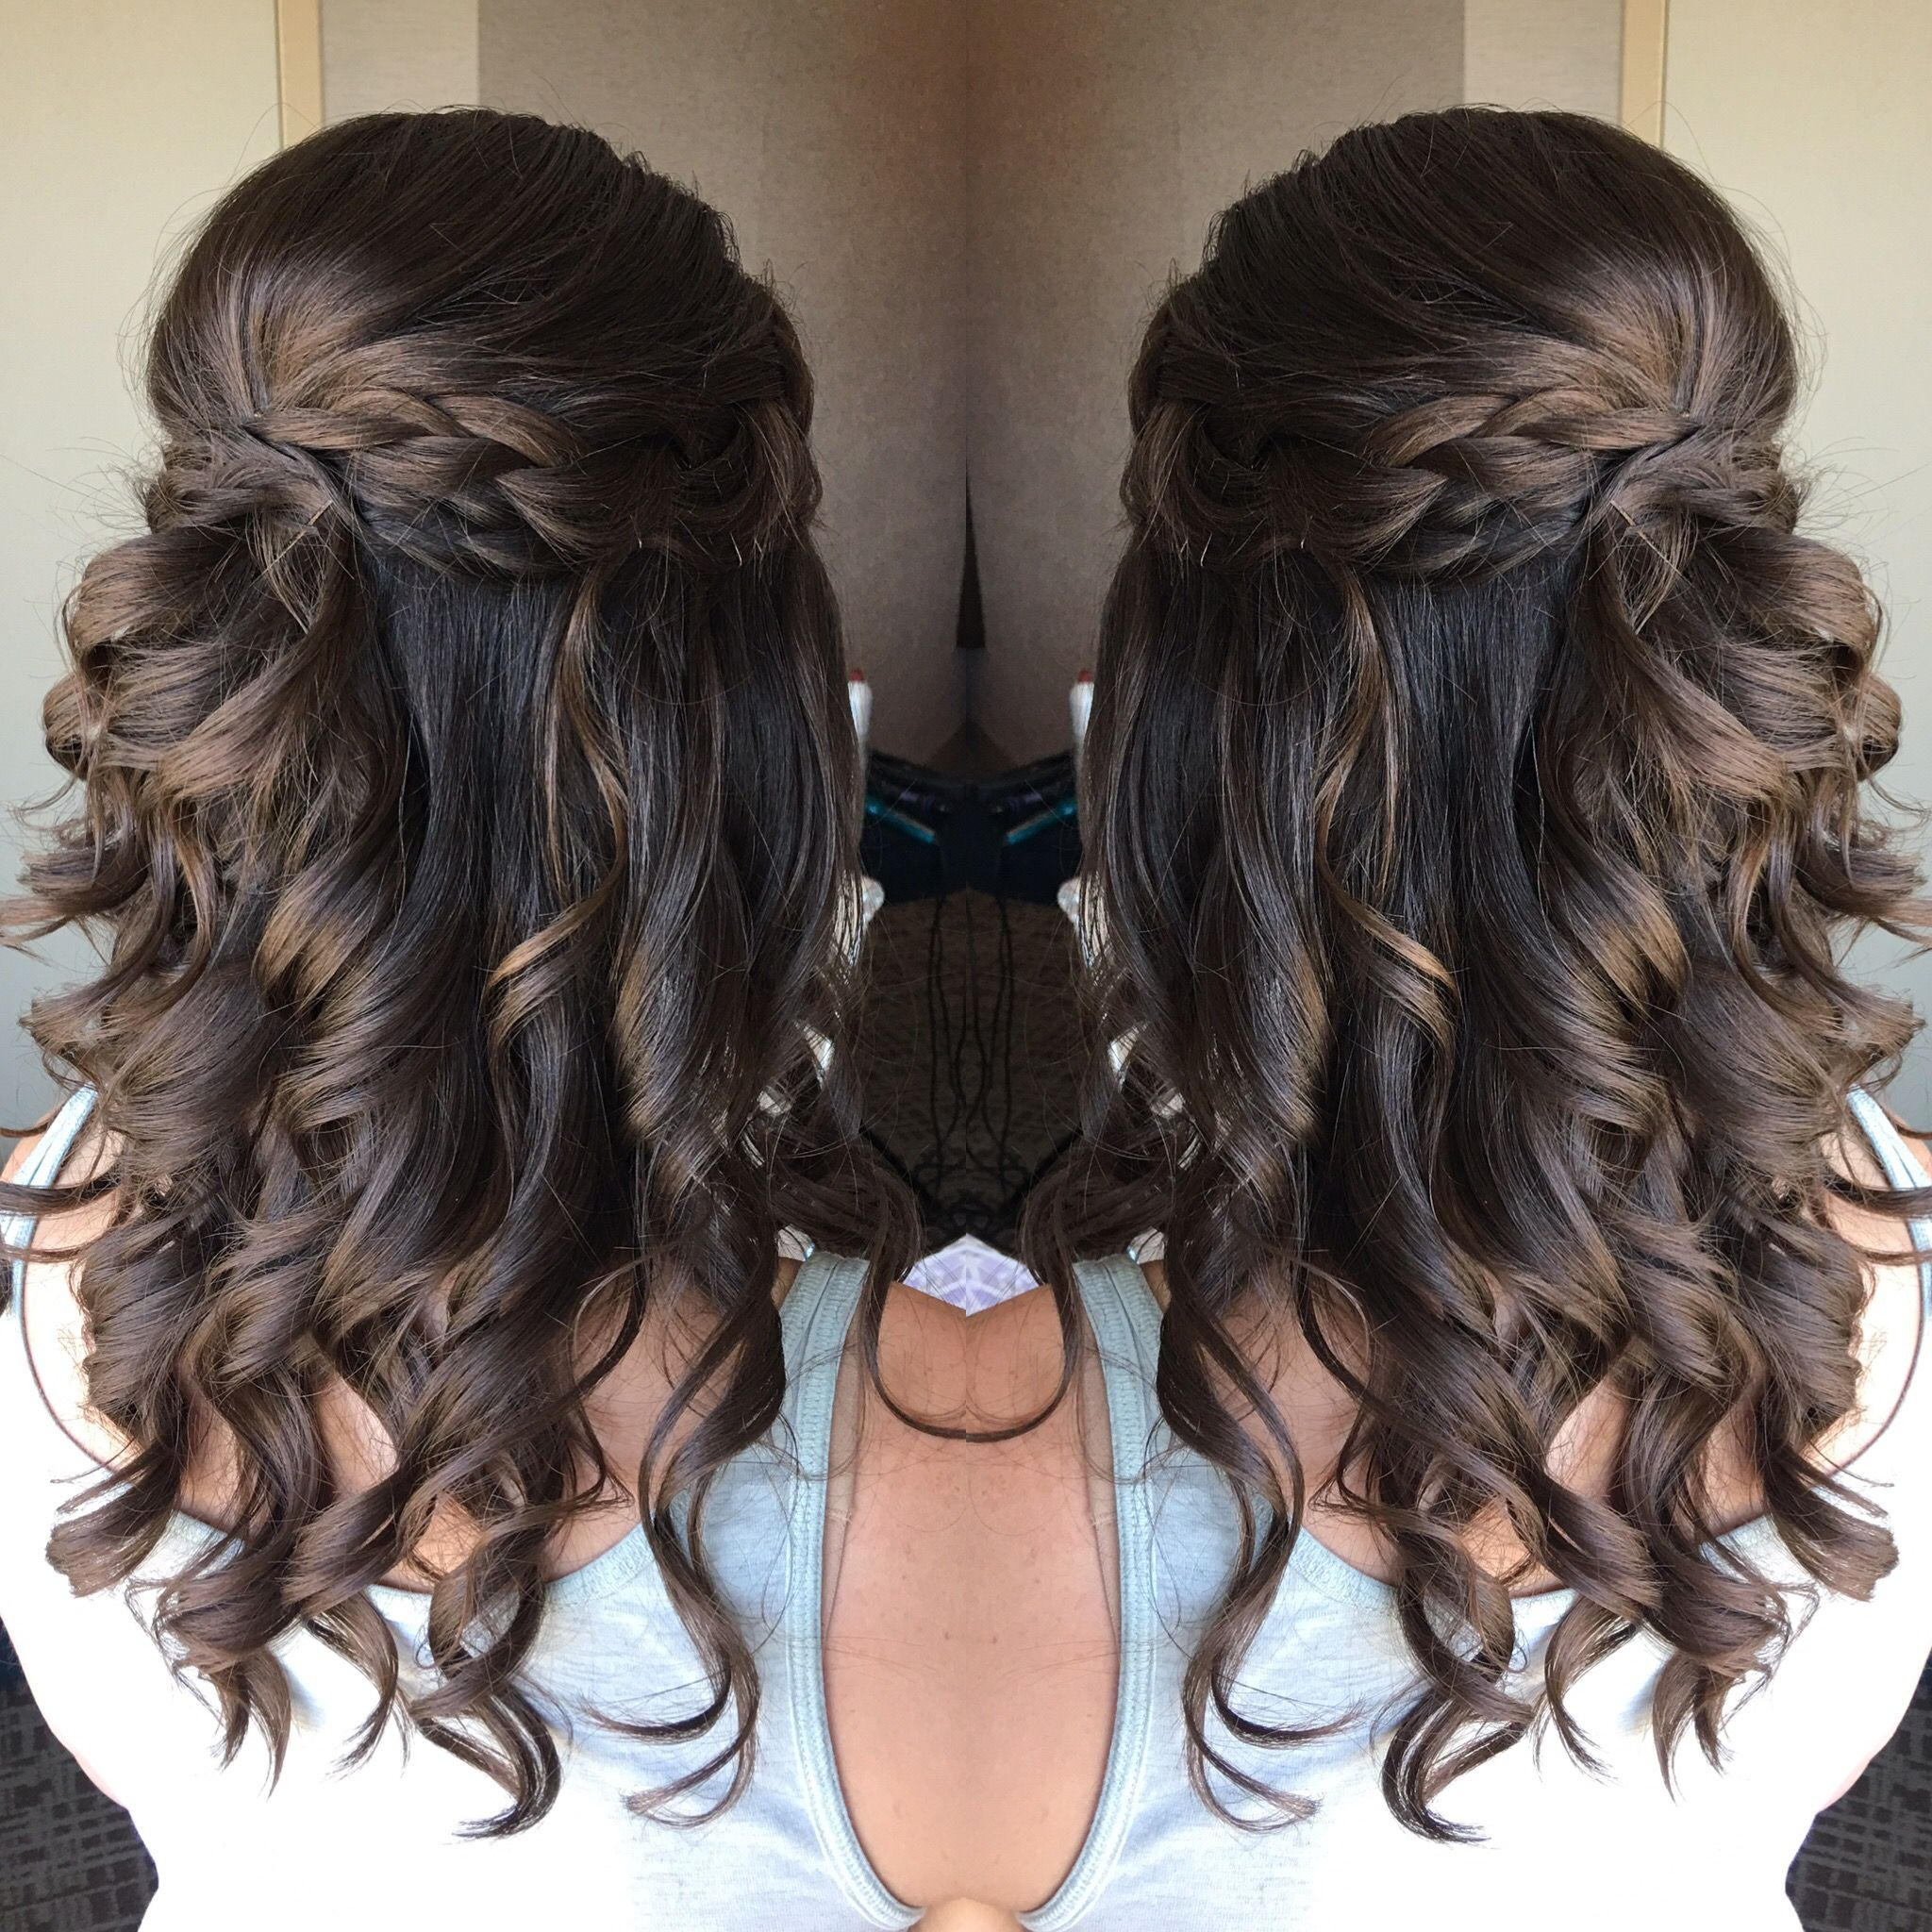 braided half up half down wedding hairstyle | hairstyles in